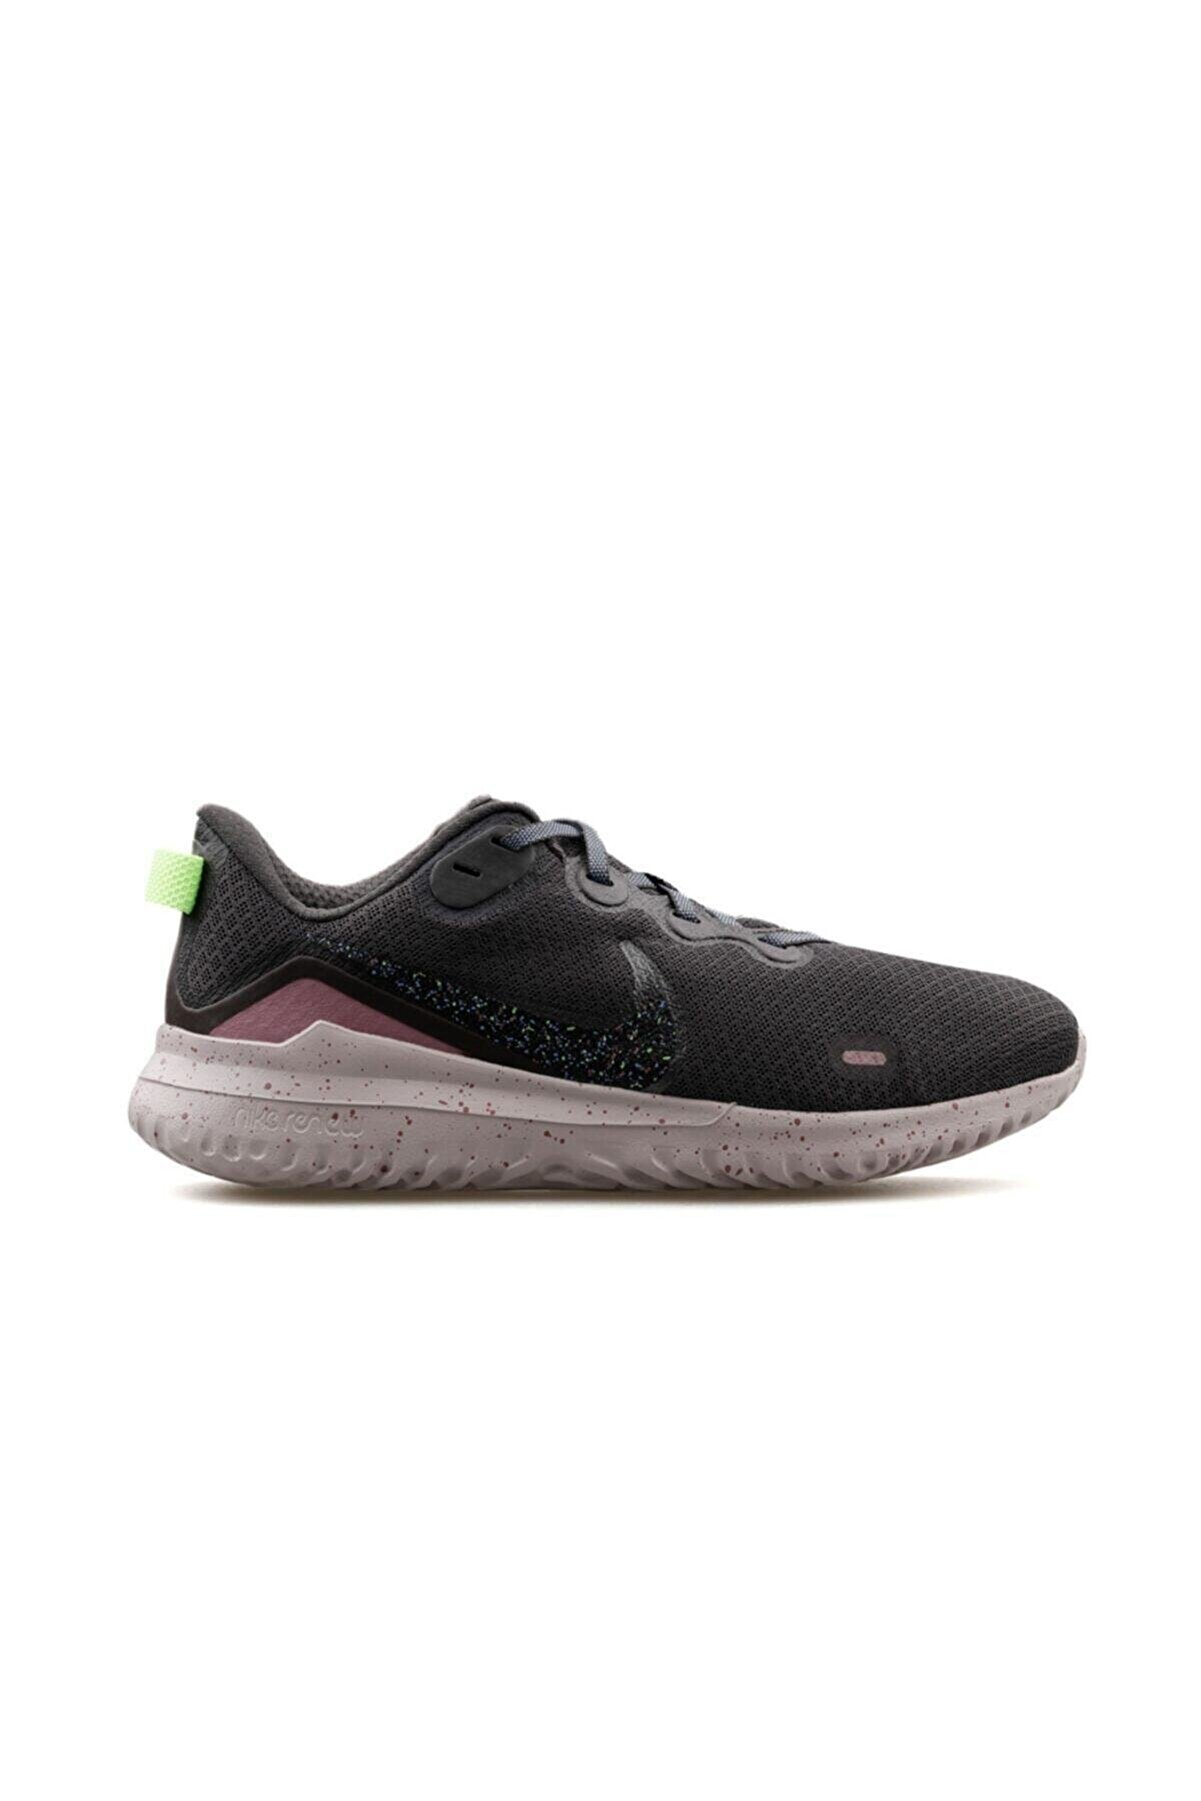 Nike Renew Ride Special Edition Cd0339-001 Cd0339-001